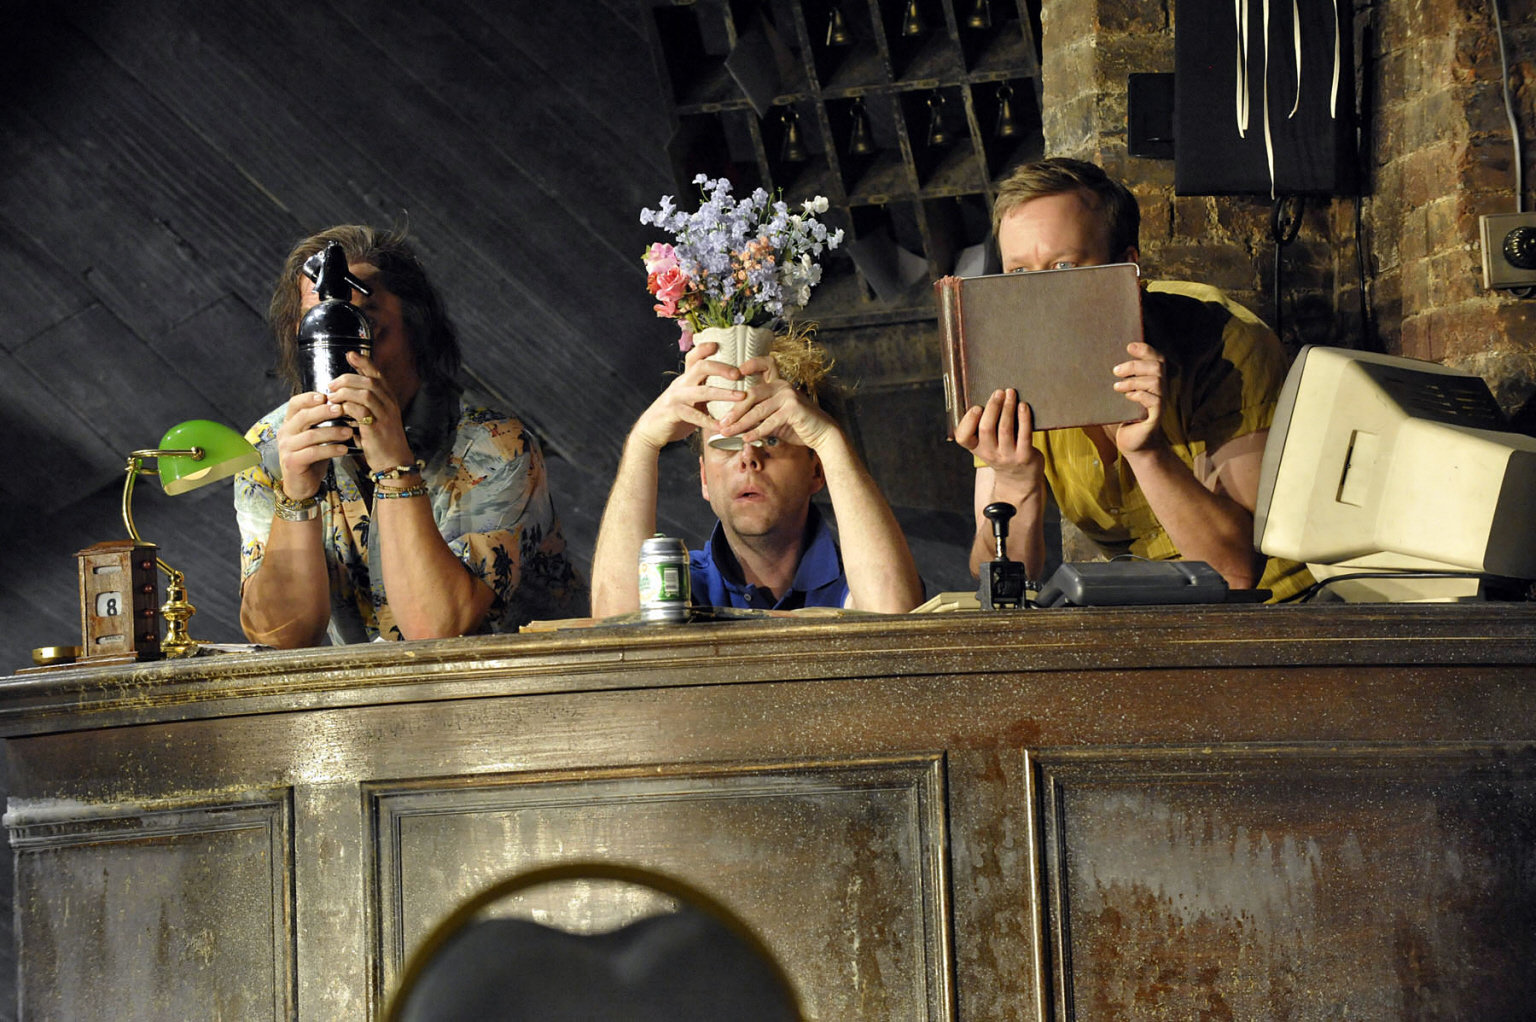 Sir Toby, Sir Andrew and Fabian hide from Malvolio behind an old bar, holding up objects in front of their faces in the 2012 production of Twelfth Night.